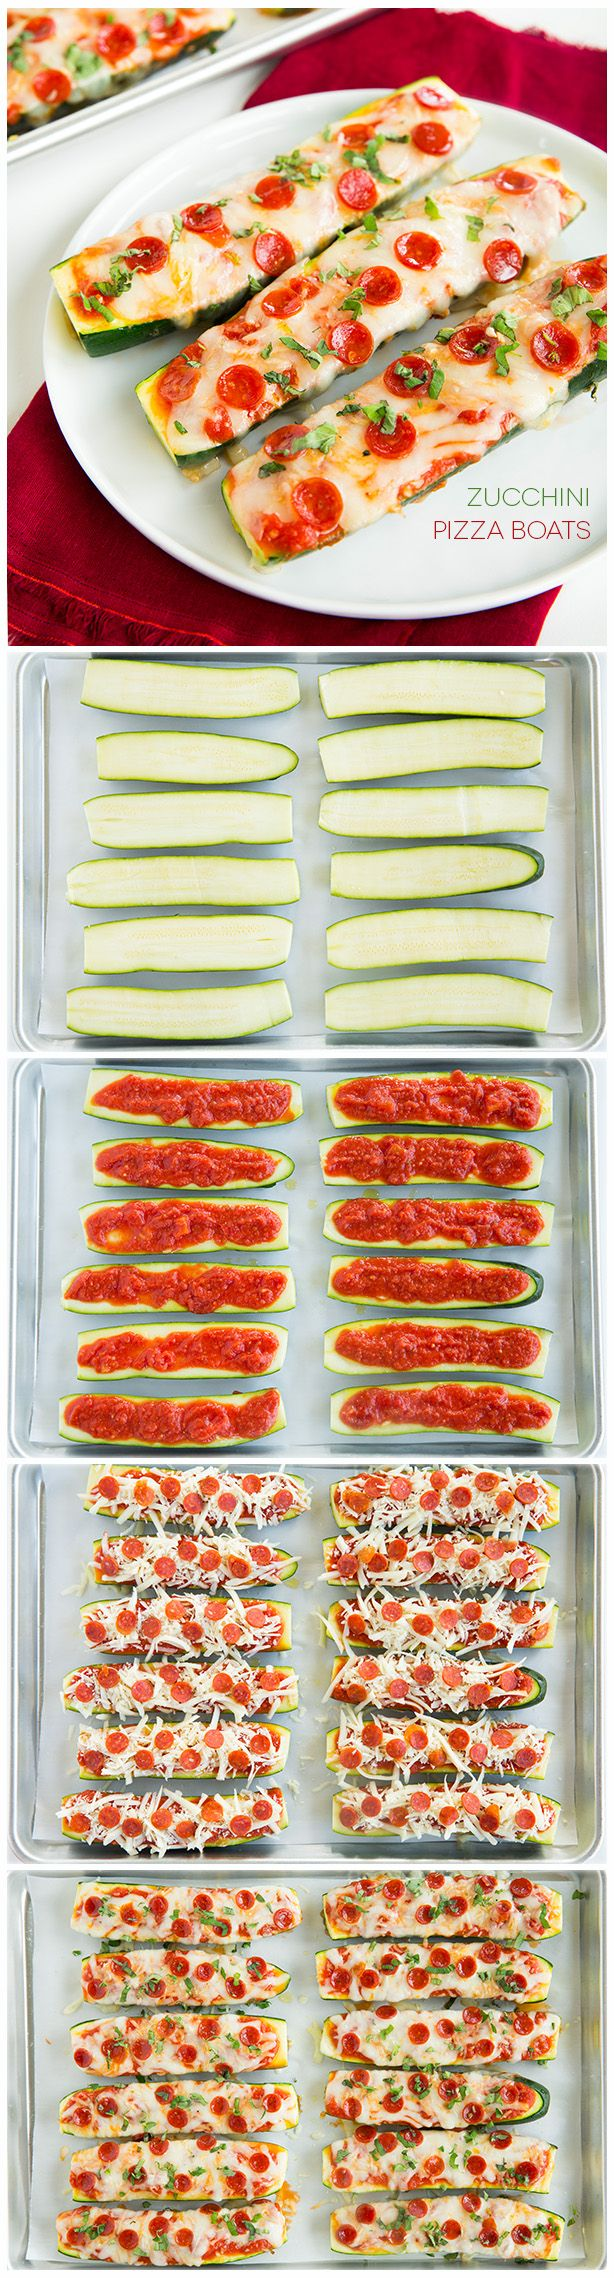 Zucchini Pizza Boats - They are INCREDIBLY good and only take about 10 minutes prep!! My whole family loved them (picky eaters included).